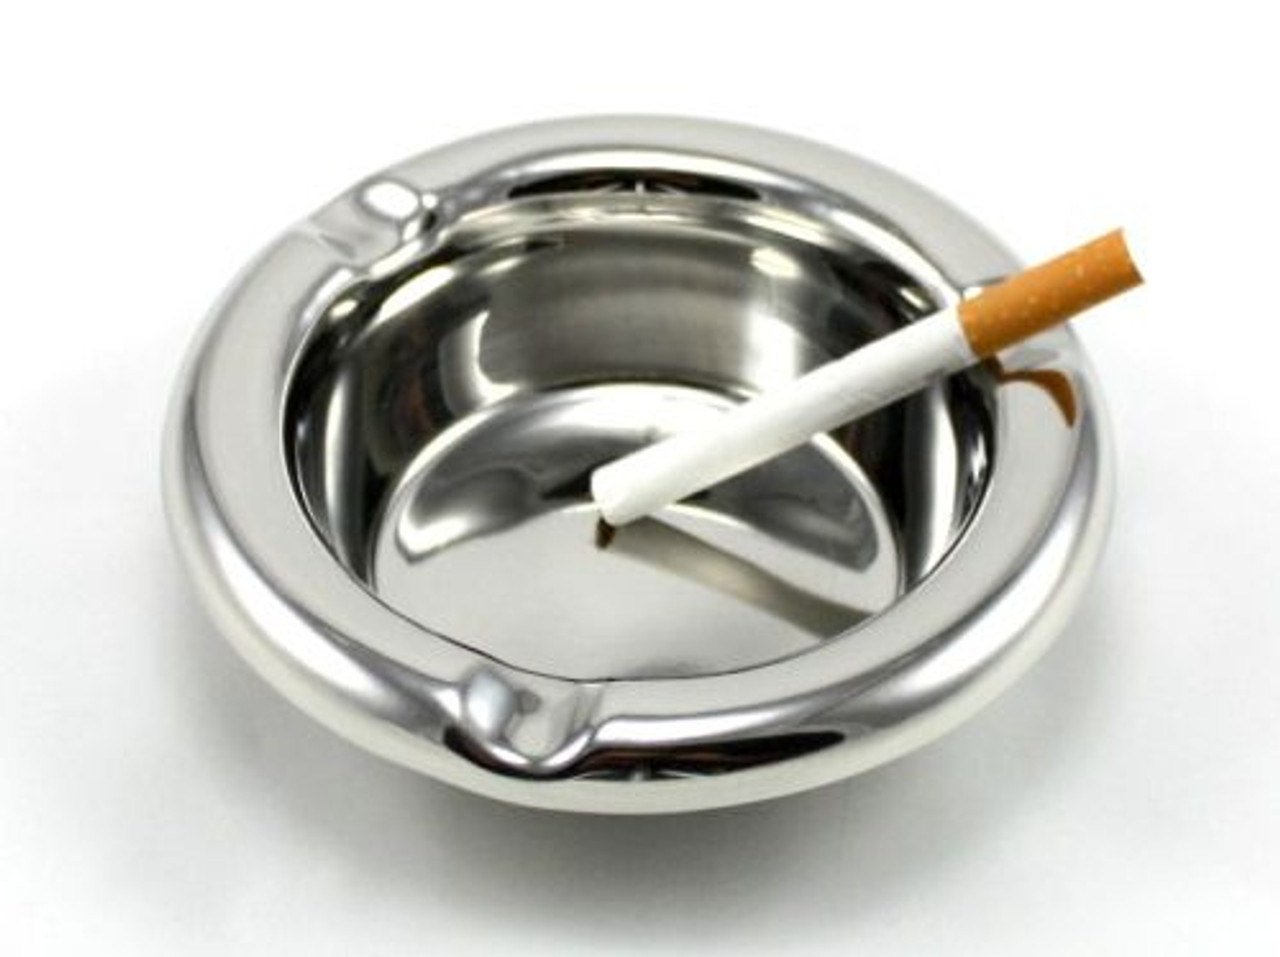 Large Stainless Steel Cigarette Ashtray